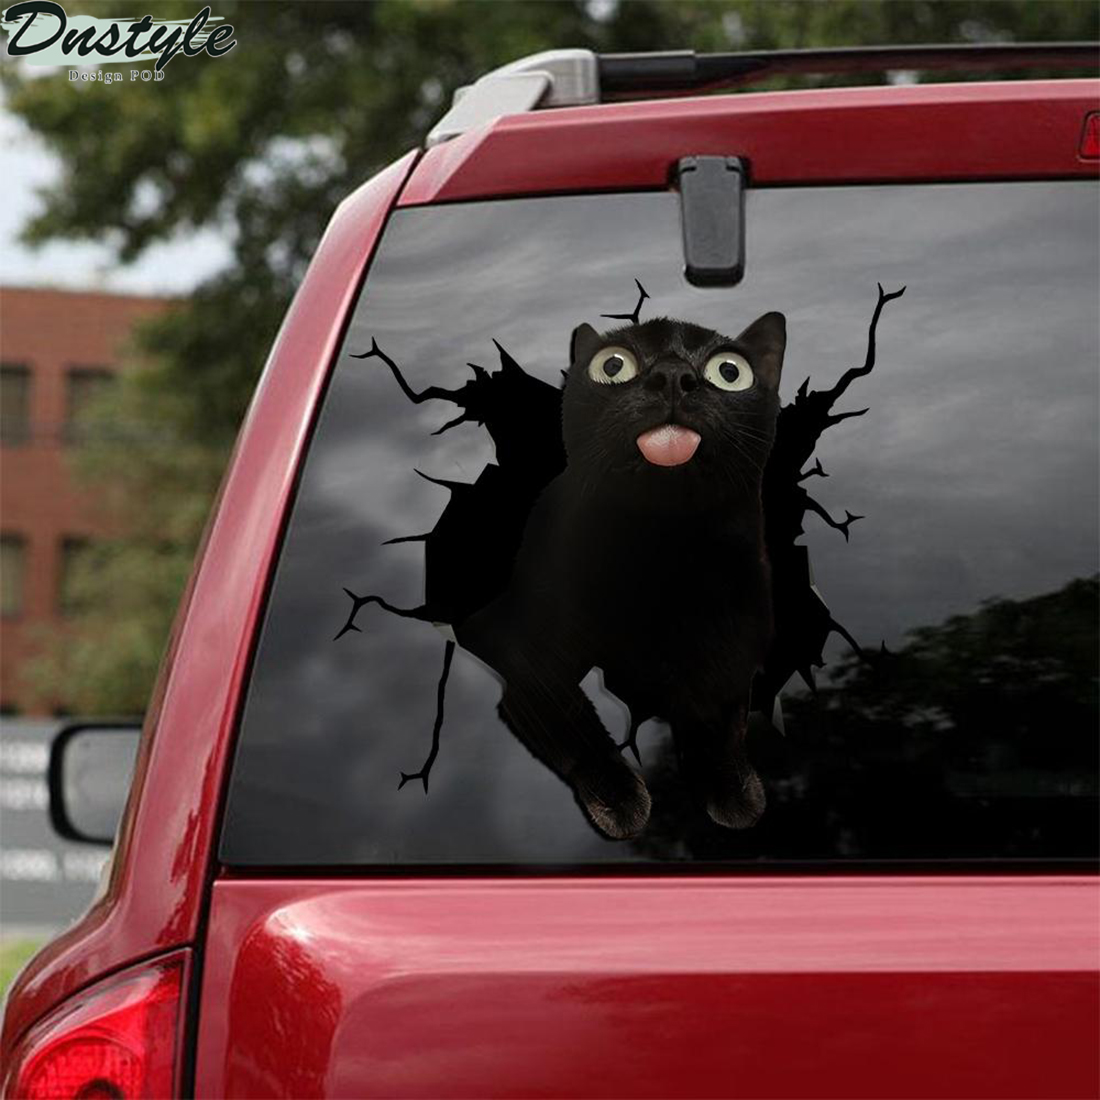 Down syndrome black cat crack car decal sticker 1